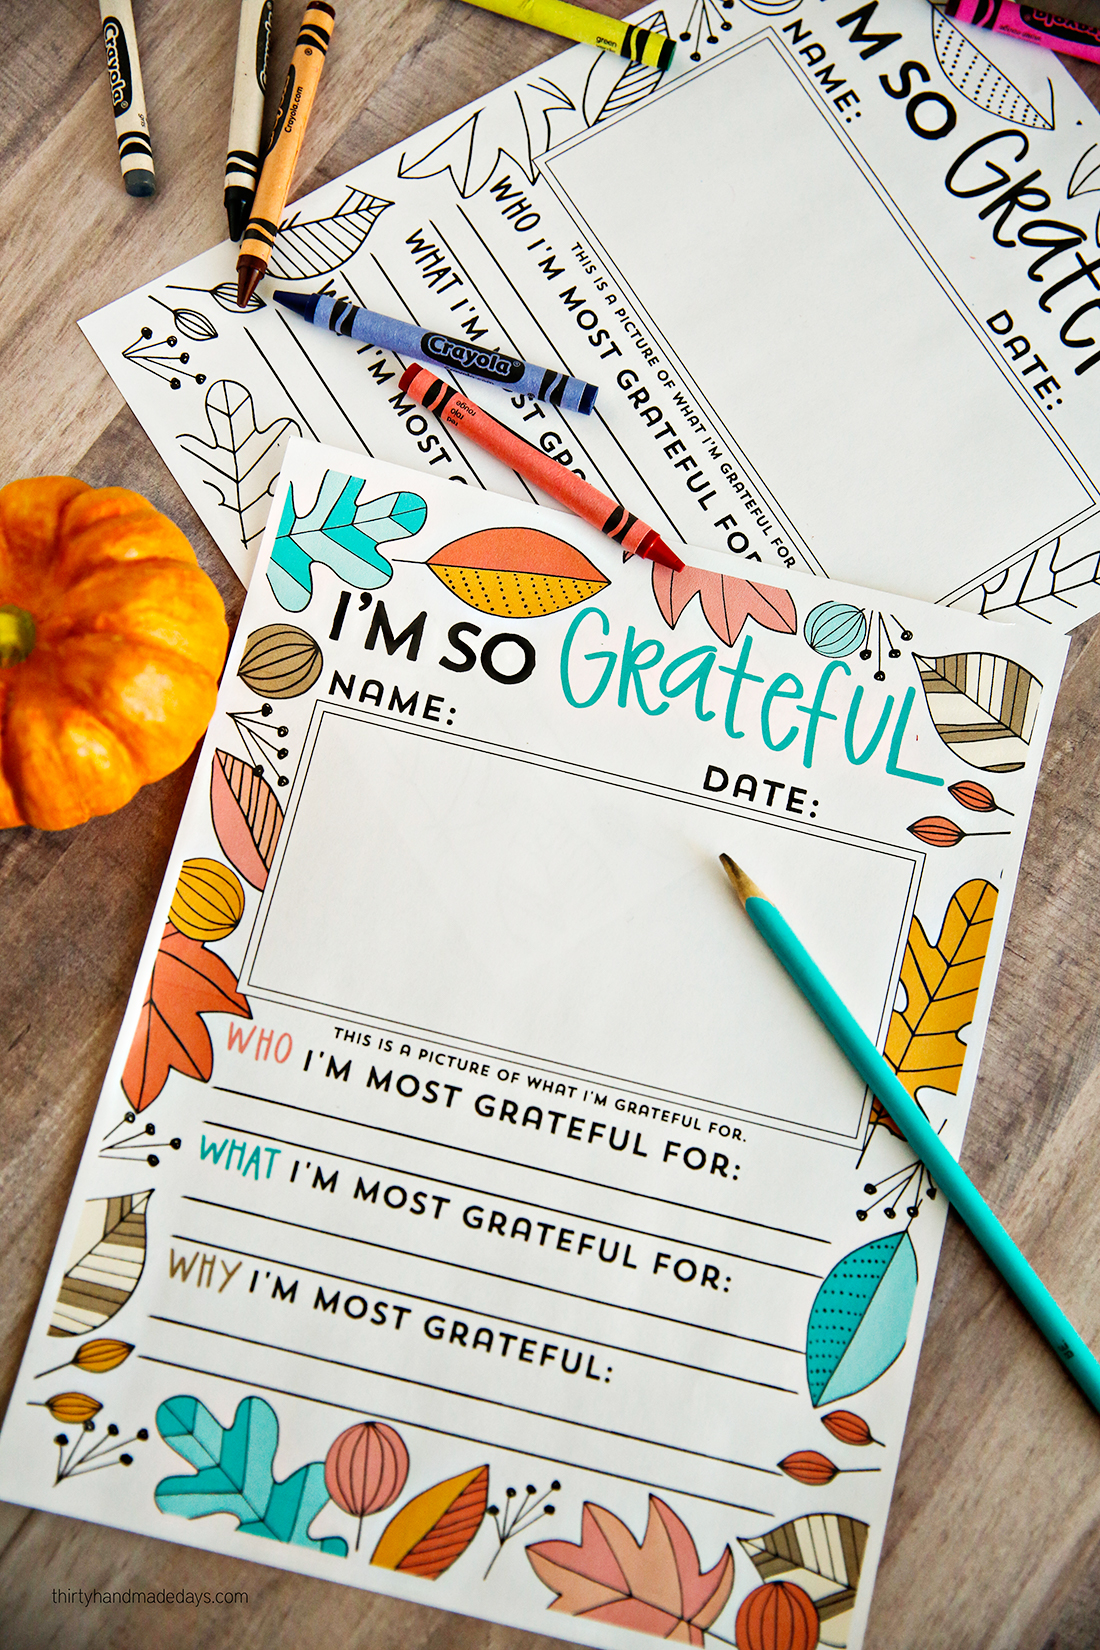 "Holidays: ""I'm so grateful for ......"" Thanksgiving coloring pages to fill in. You can use this for kids or adults via thirtyhandmadedays.com"